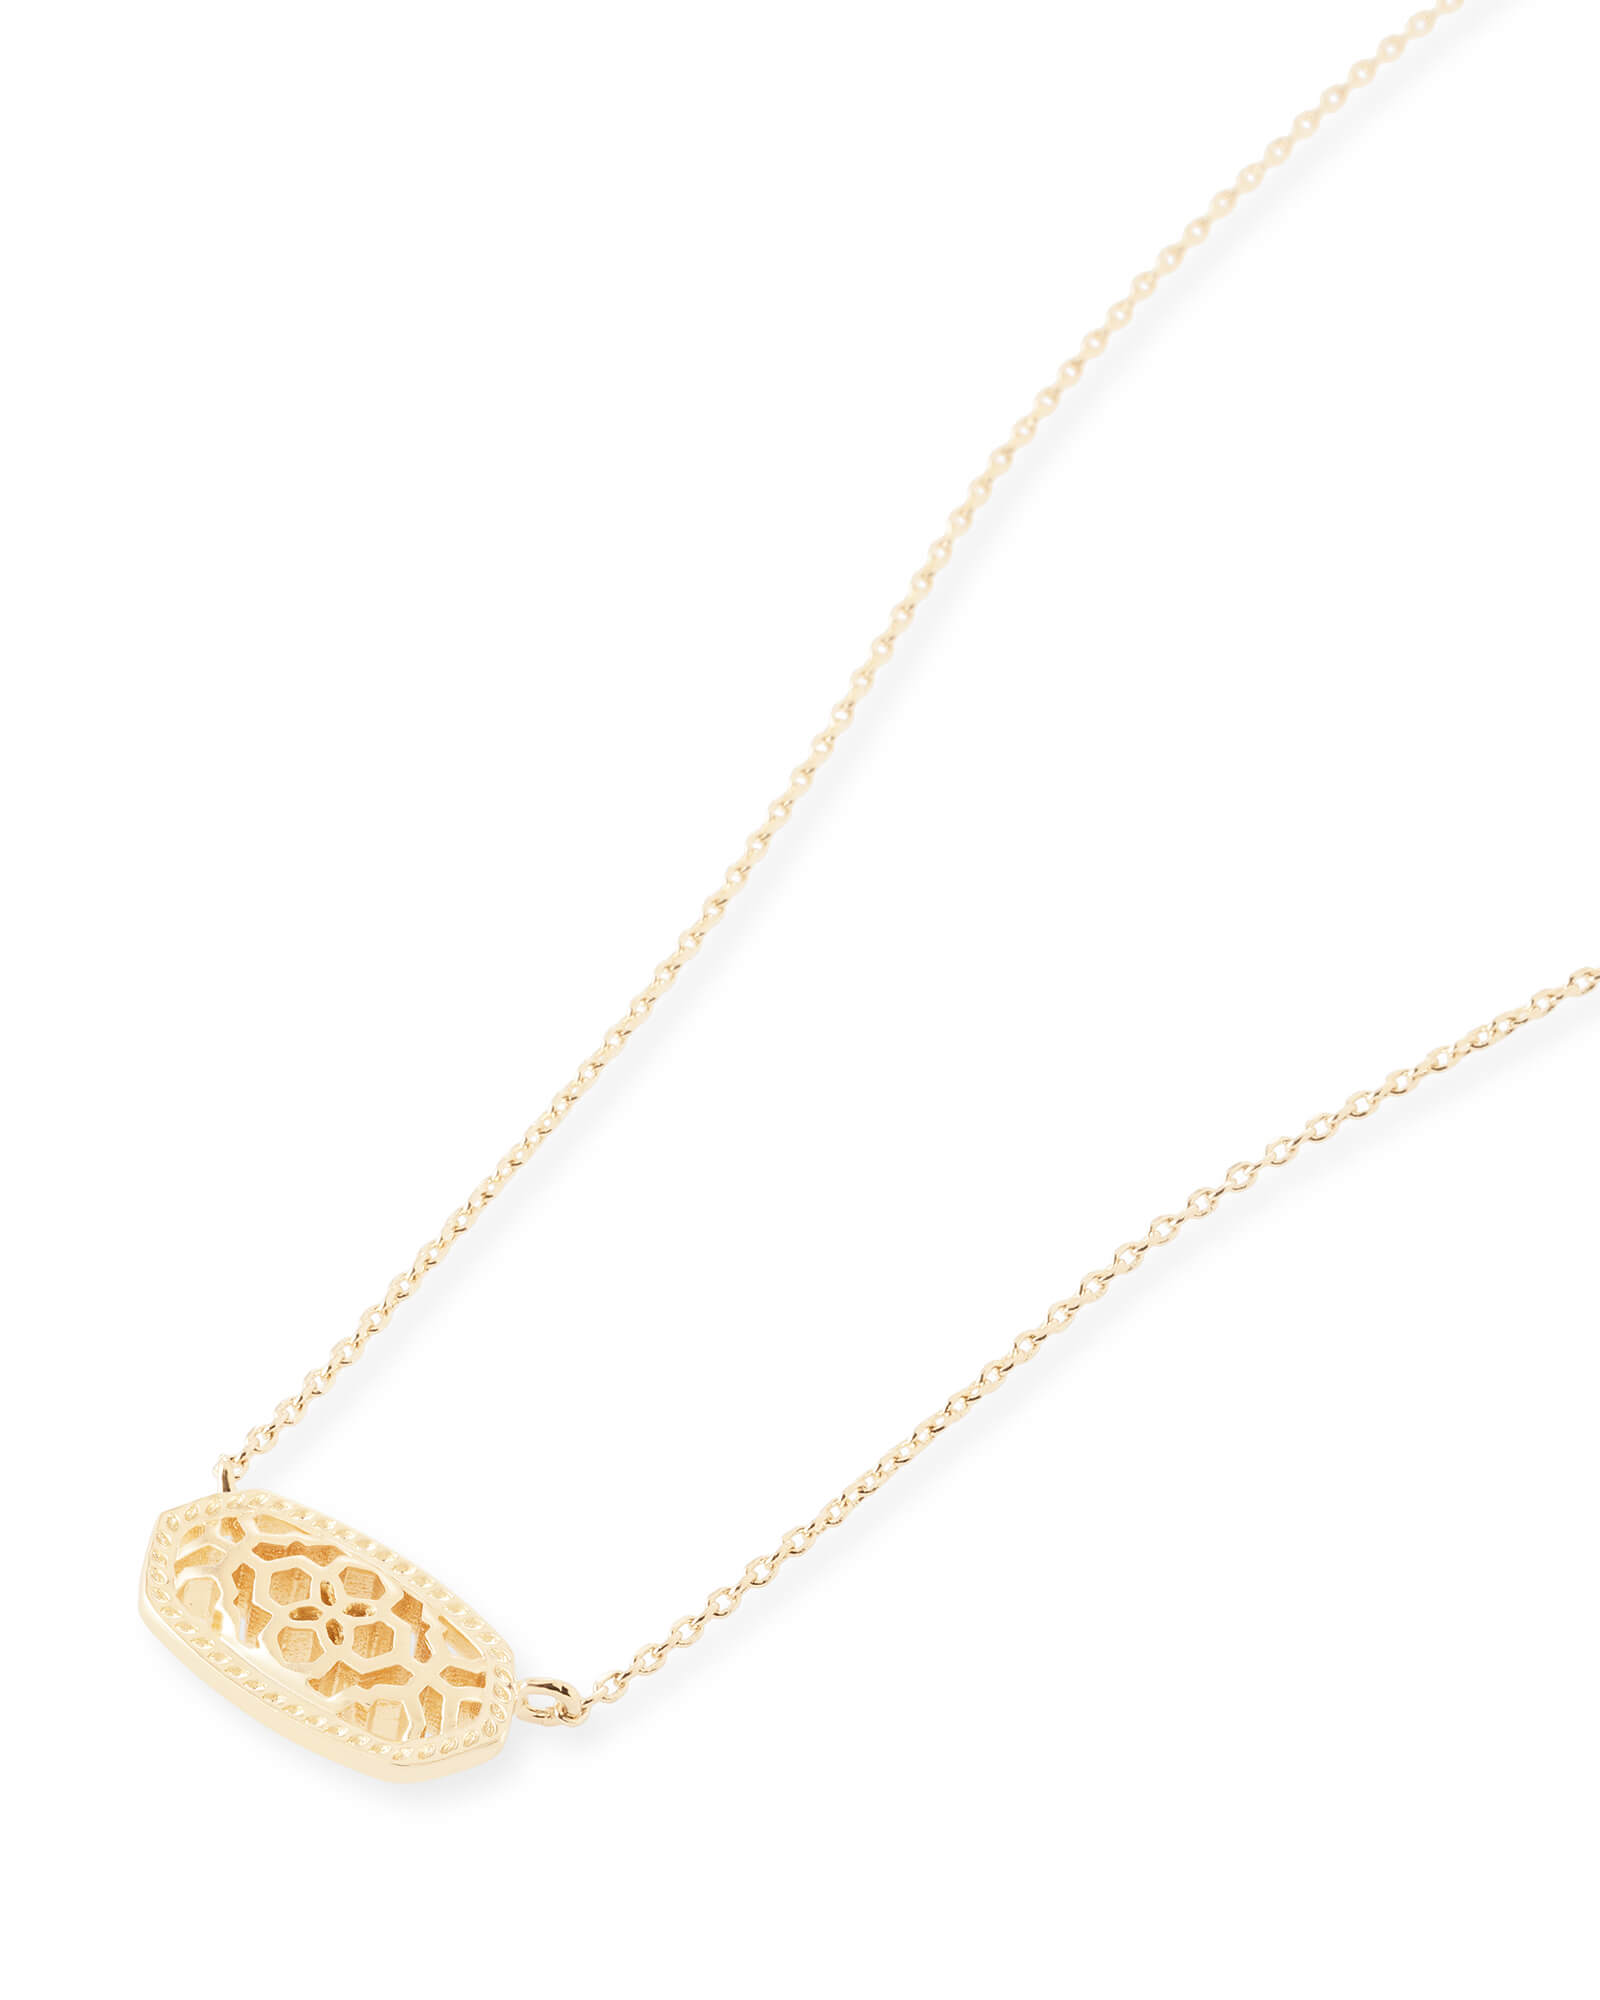 Elisa pendant necklace in gold filigree kendra scott elisa gold pendant necklace in gold filigree mozeypictures Gallery